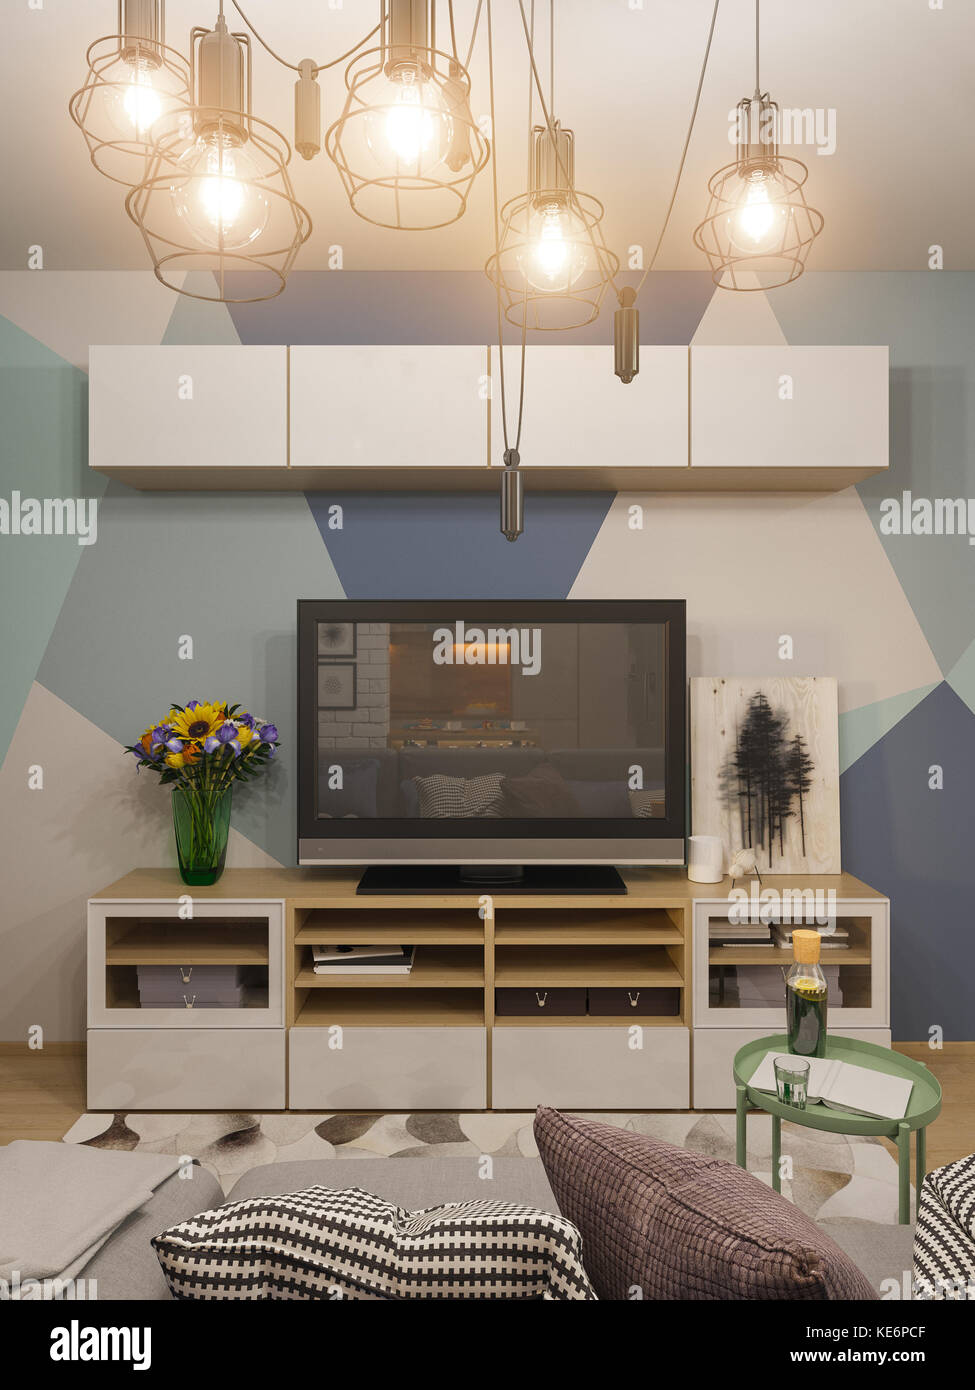 3d Illustration Living Room Interior Design Modern Studio Apartment